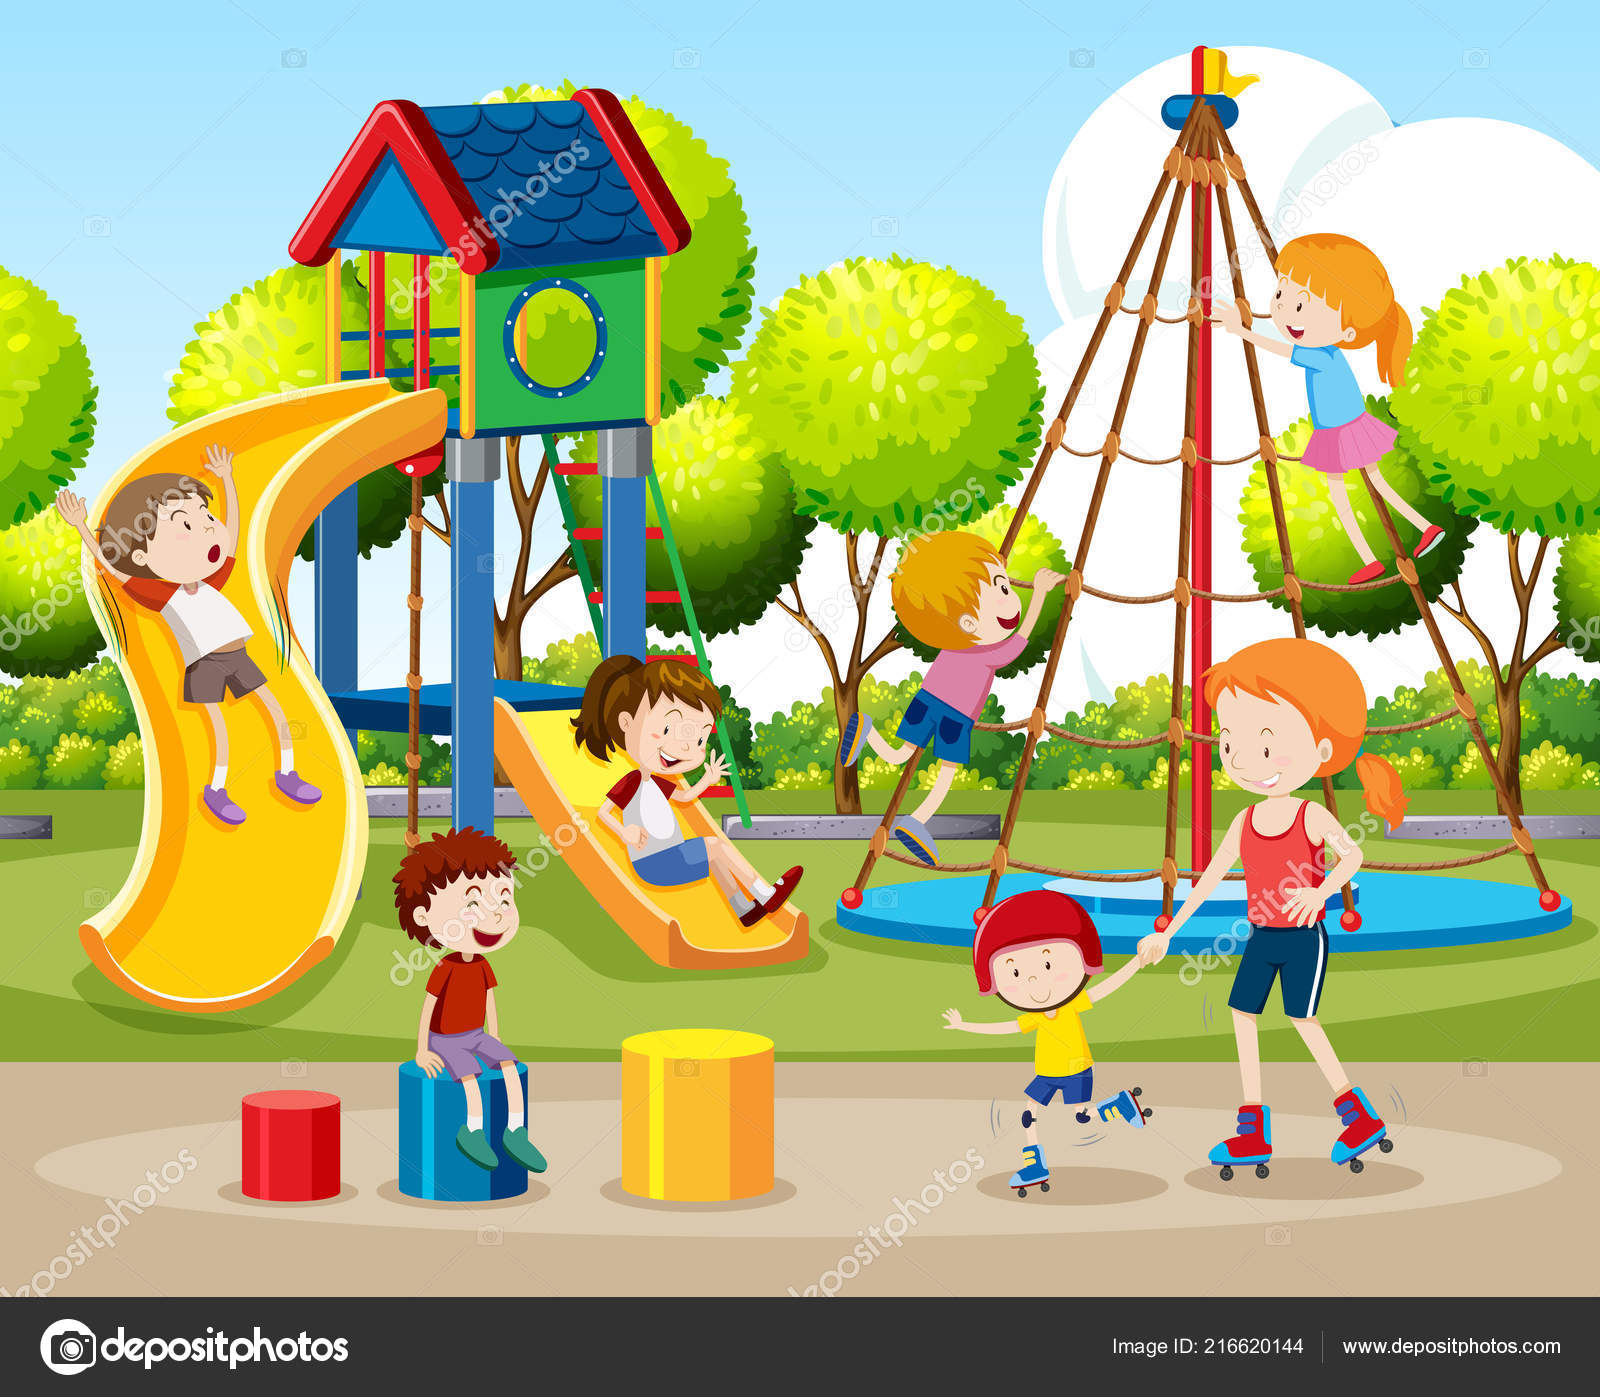 Clipart: children playing outside.